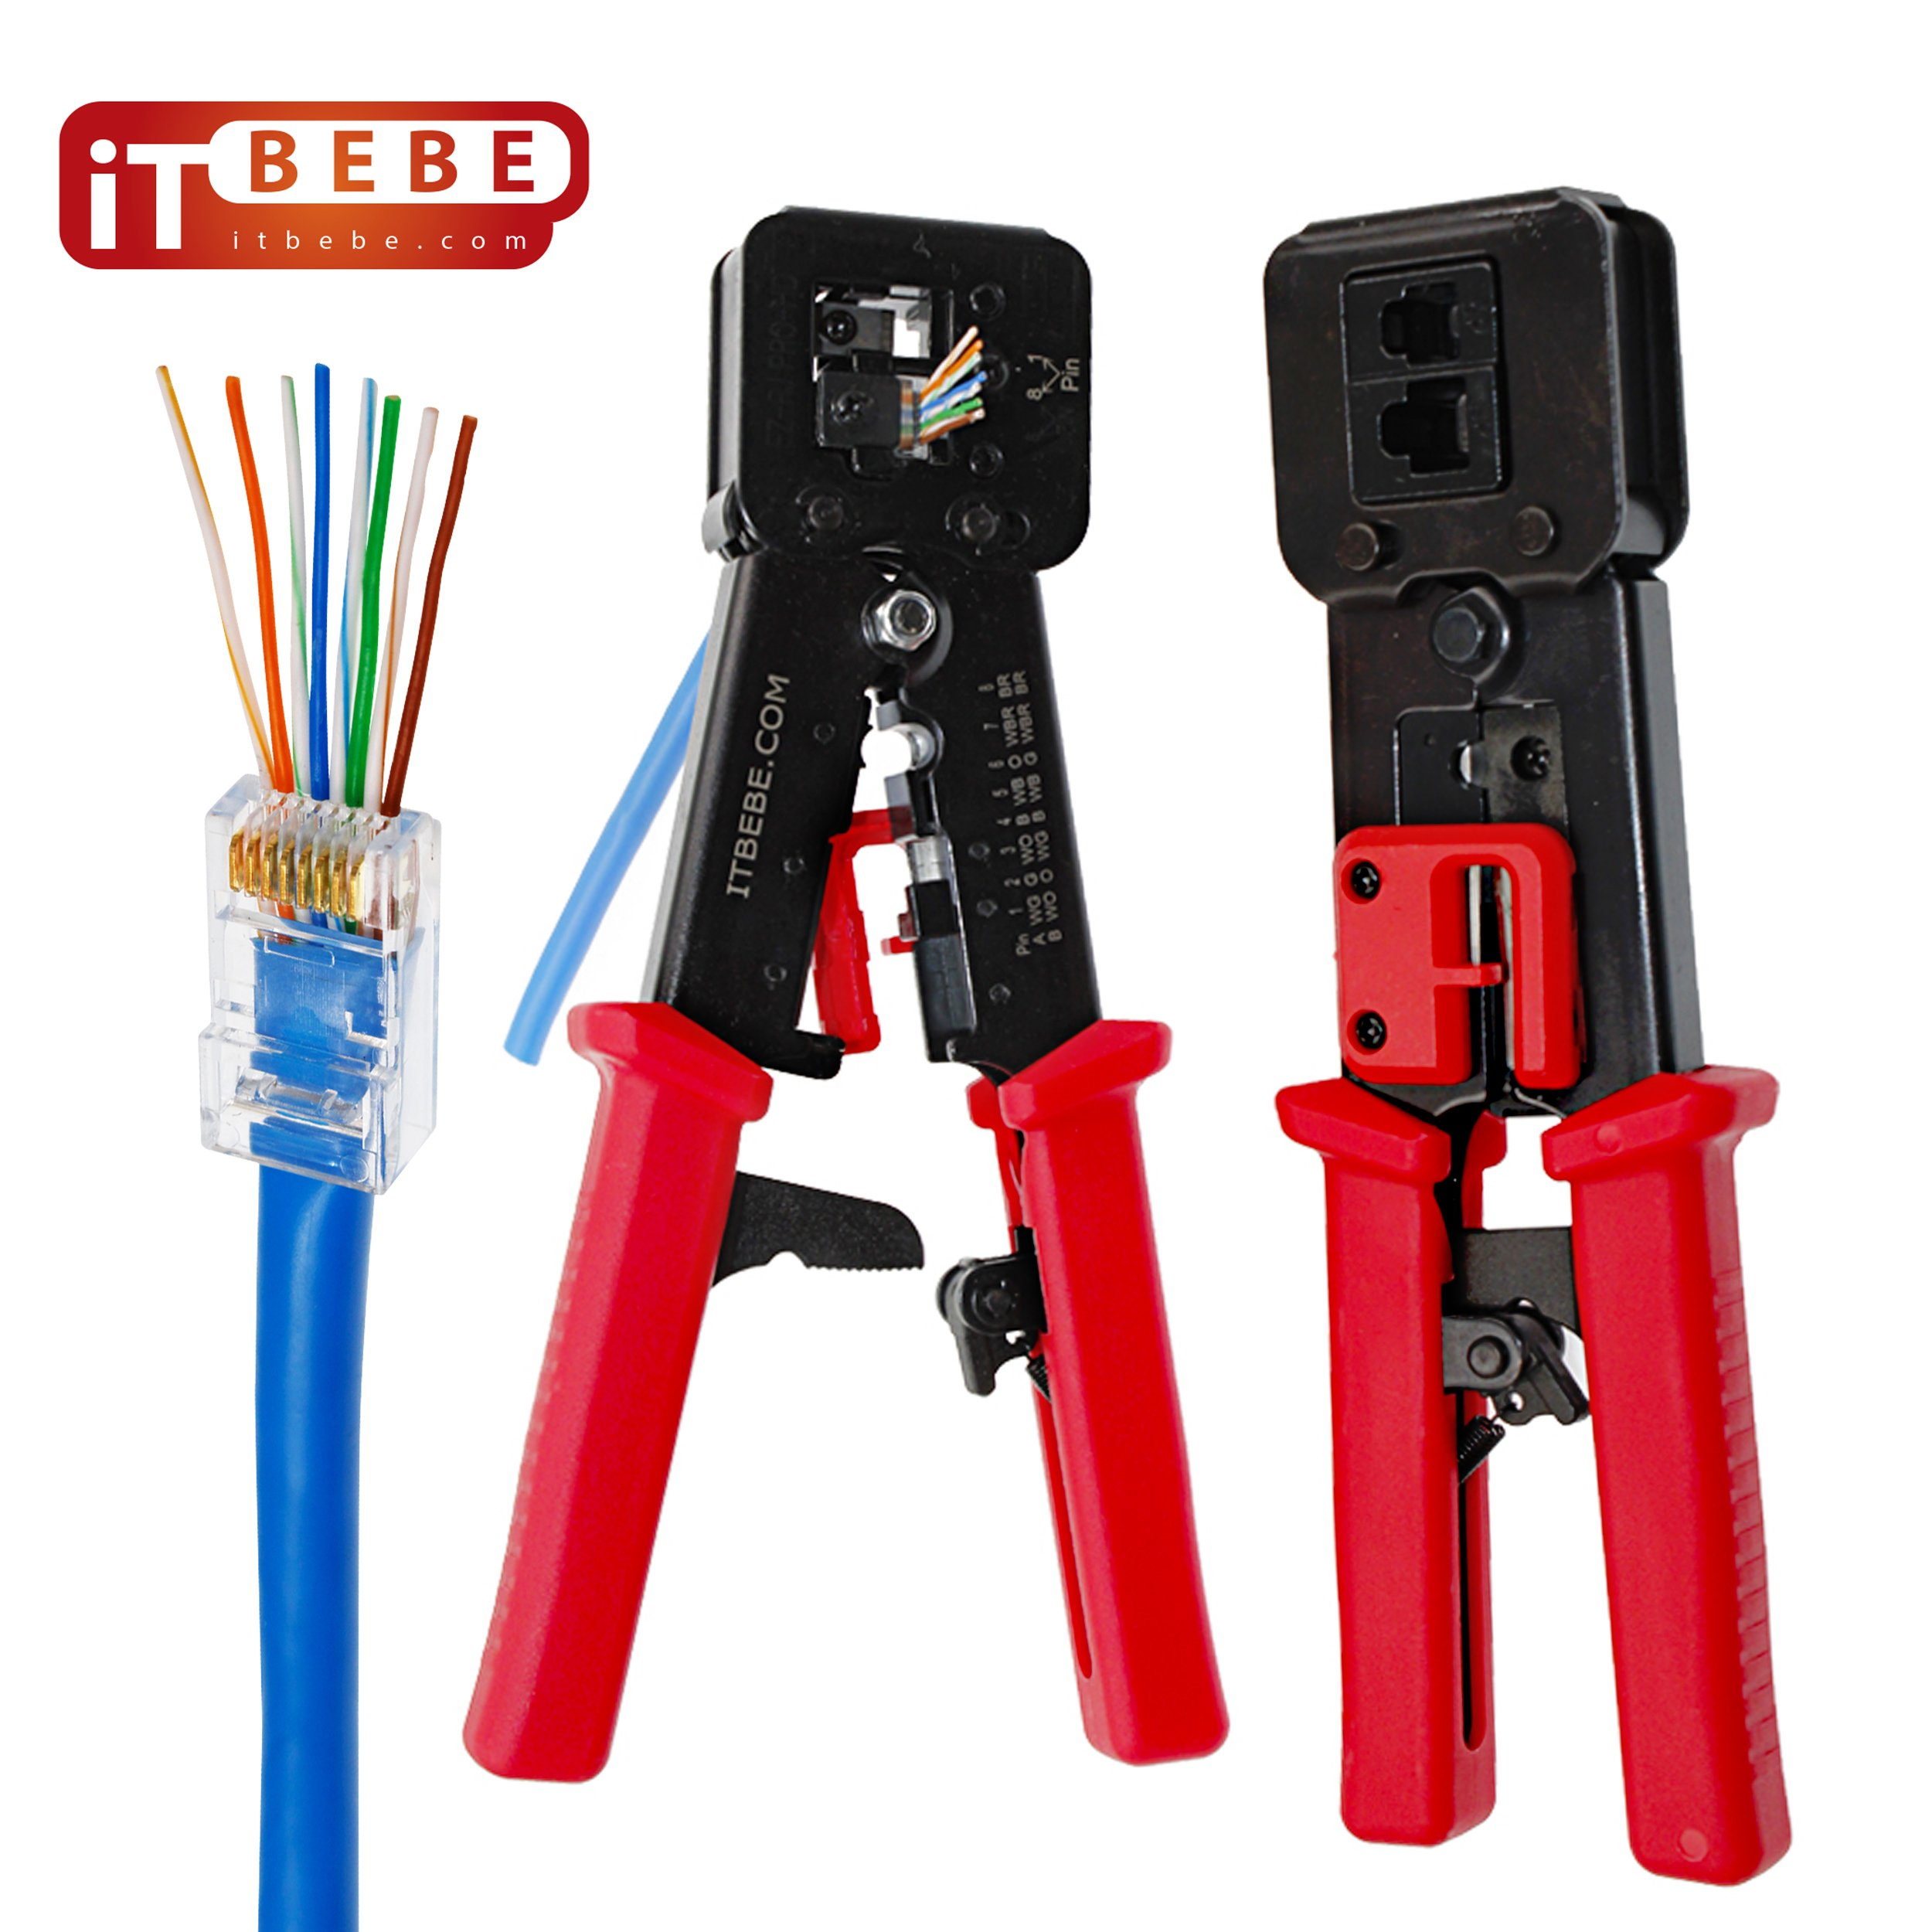 ITBEBE RJ45 Crimping Tool Made of Hardened Steel with Wire Cutter Stripping Blades and Red Textured Grips